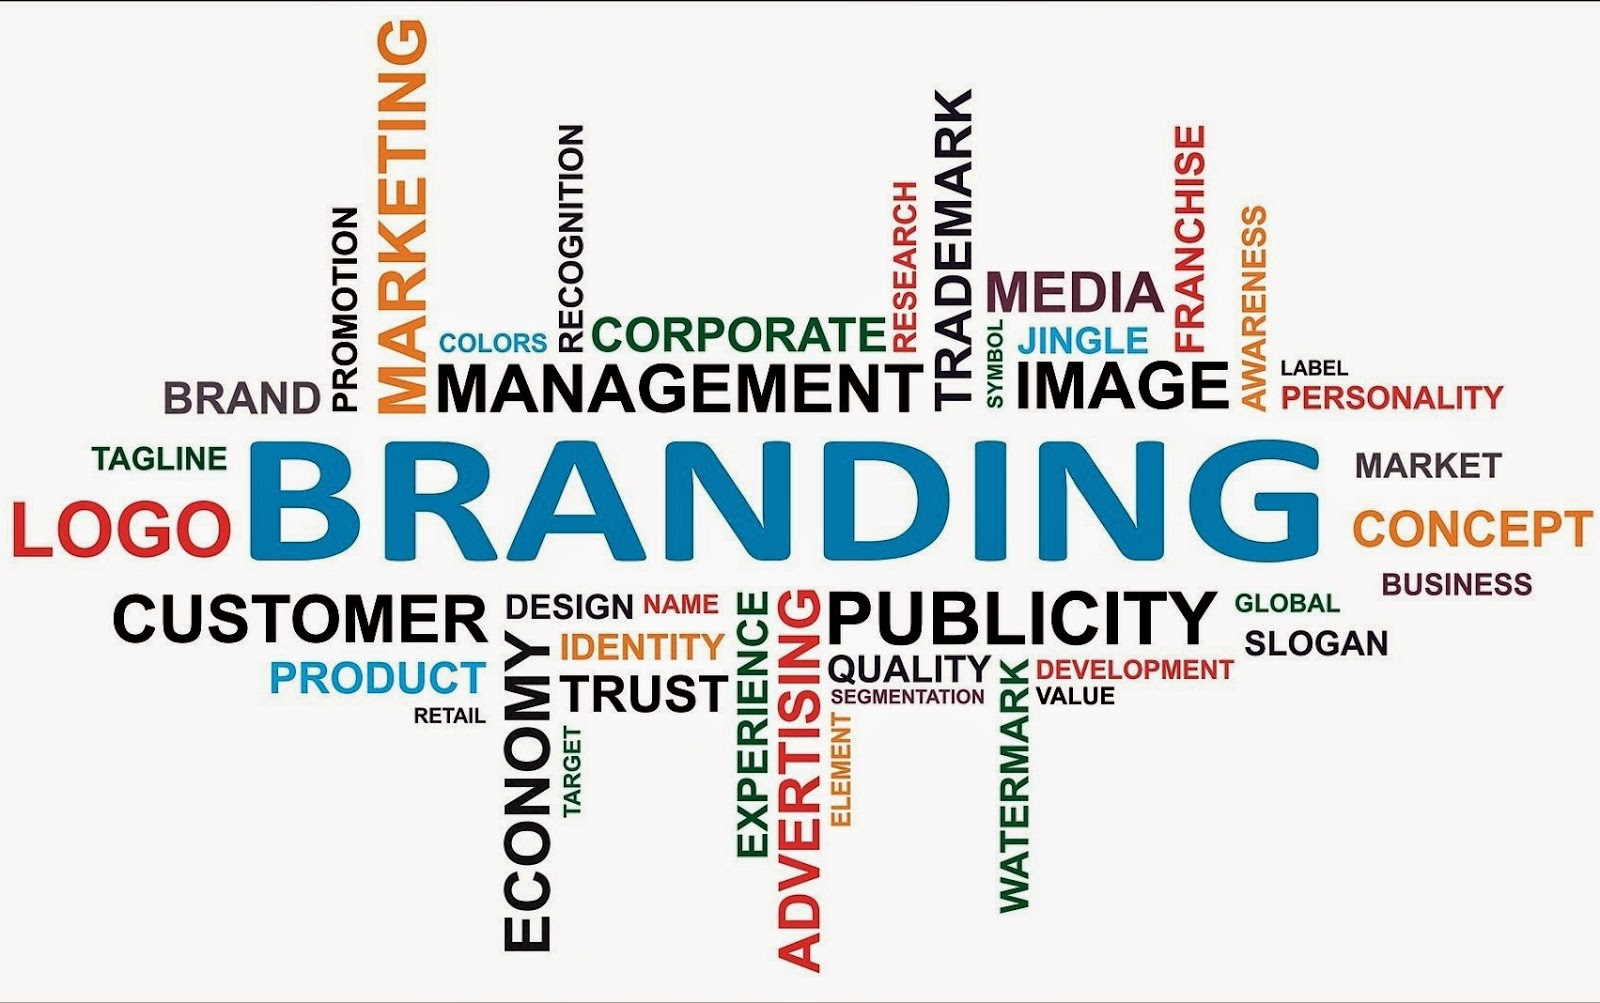 Marketing Digital - Branding